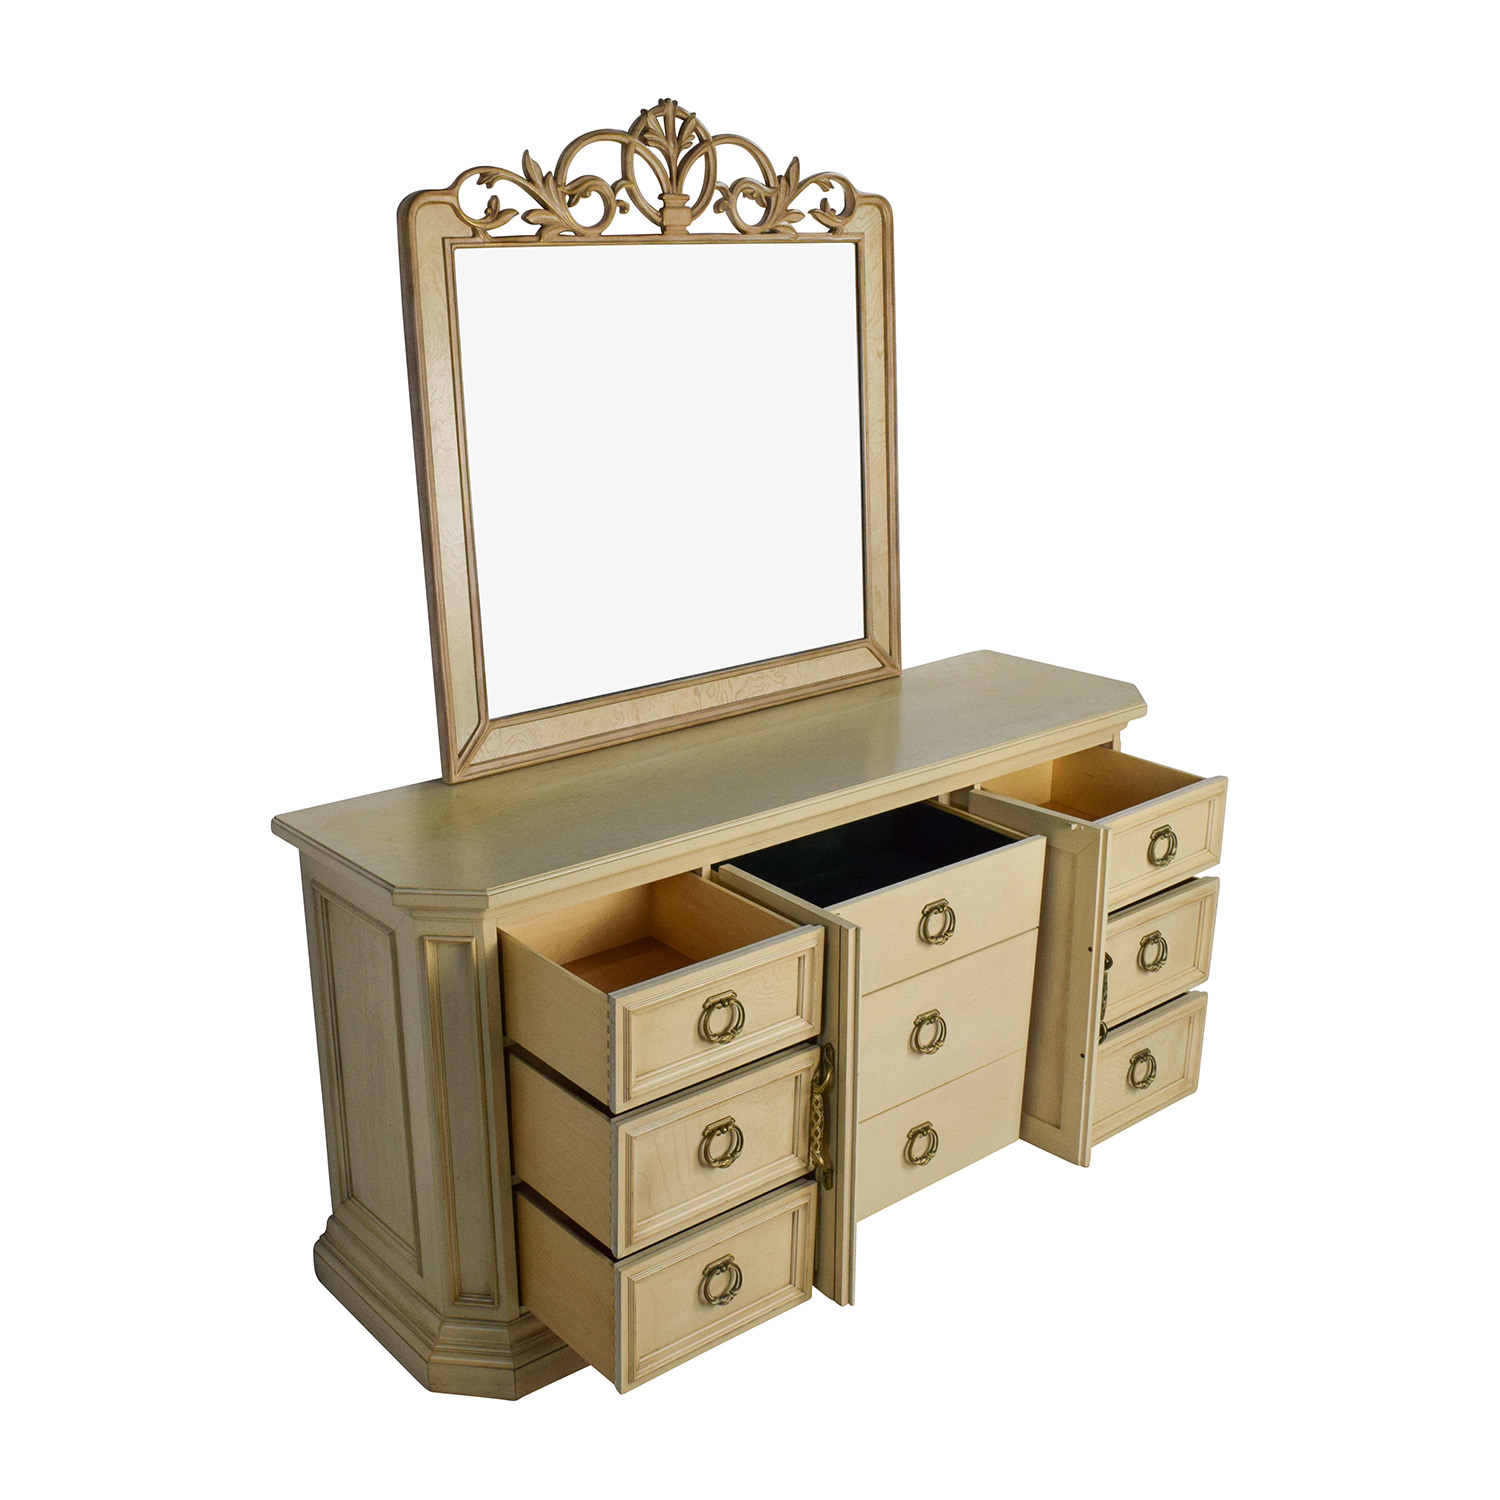 90 off custom built dresser and mirror storage for Furniture 90 off